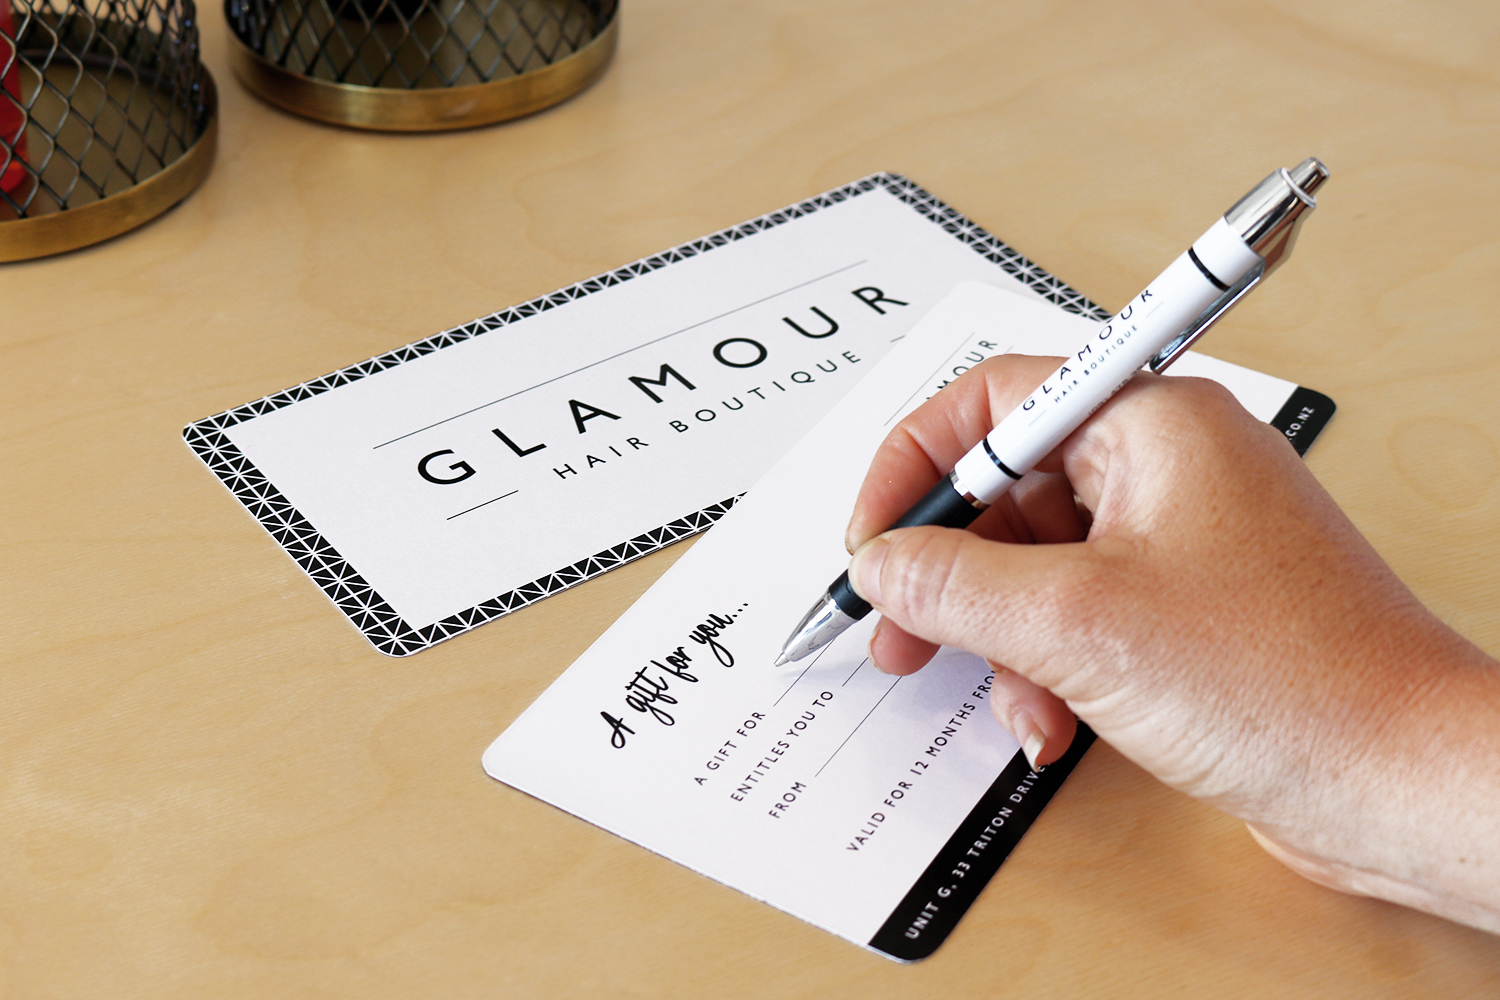 9 glamour-hair-boutique-gift-certificate-1.jpg